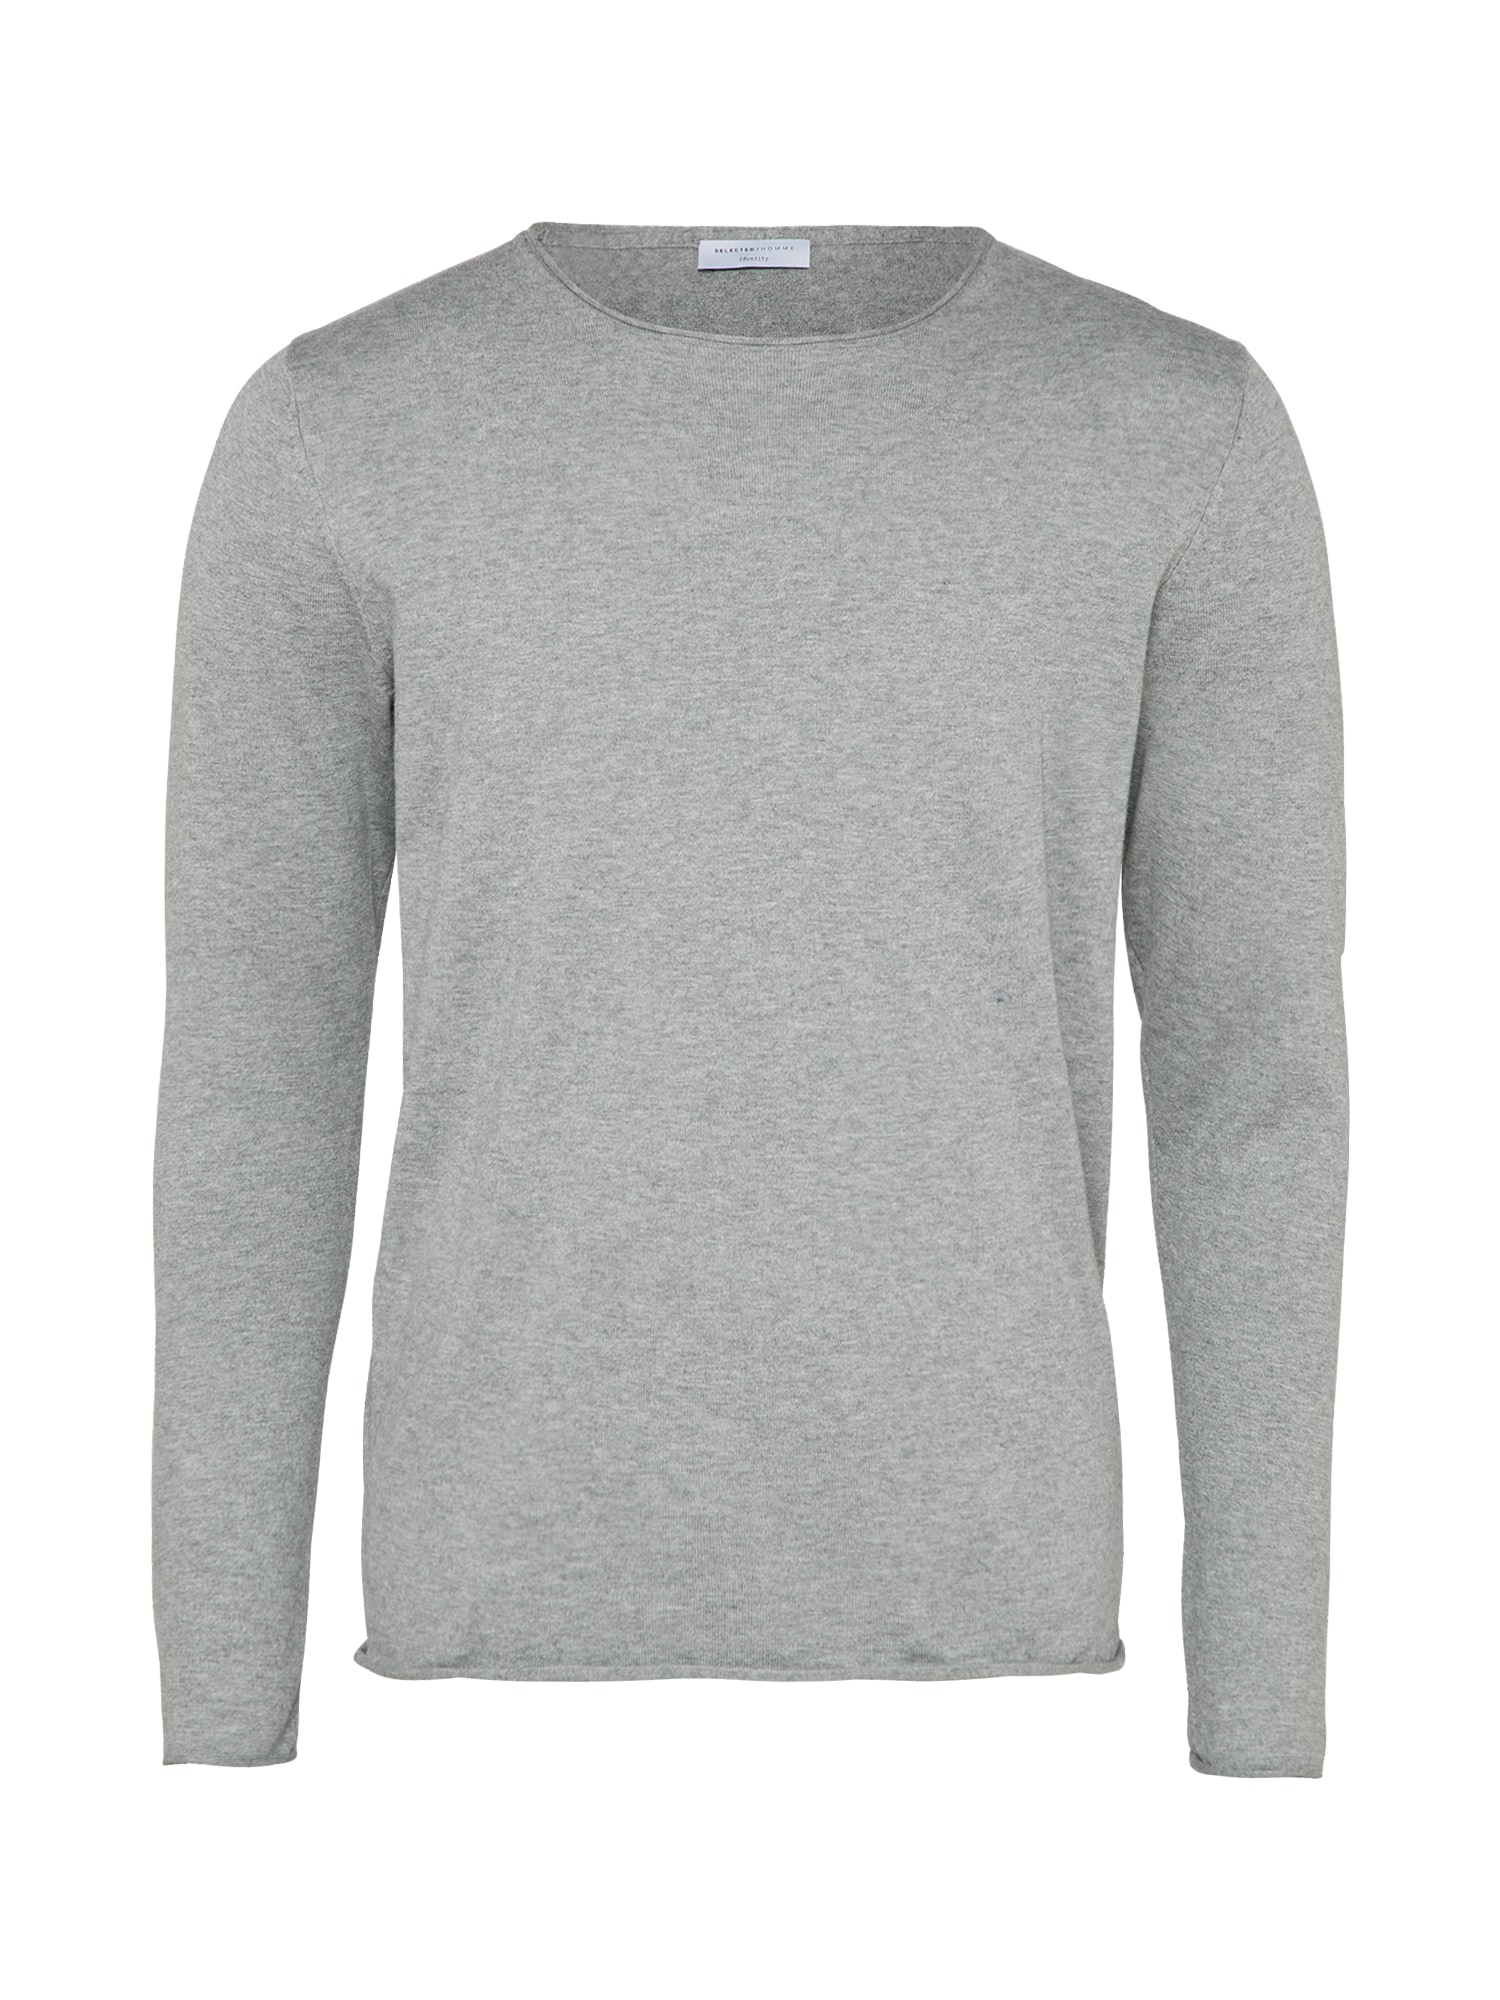 SELECTED HOMME Sveter 'SHDDOME CREW NECK NOOS' sivá